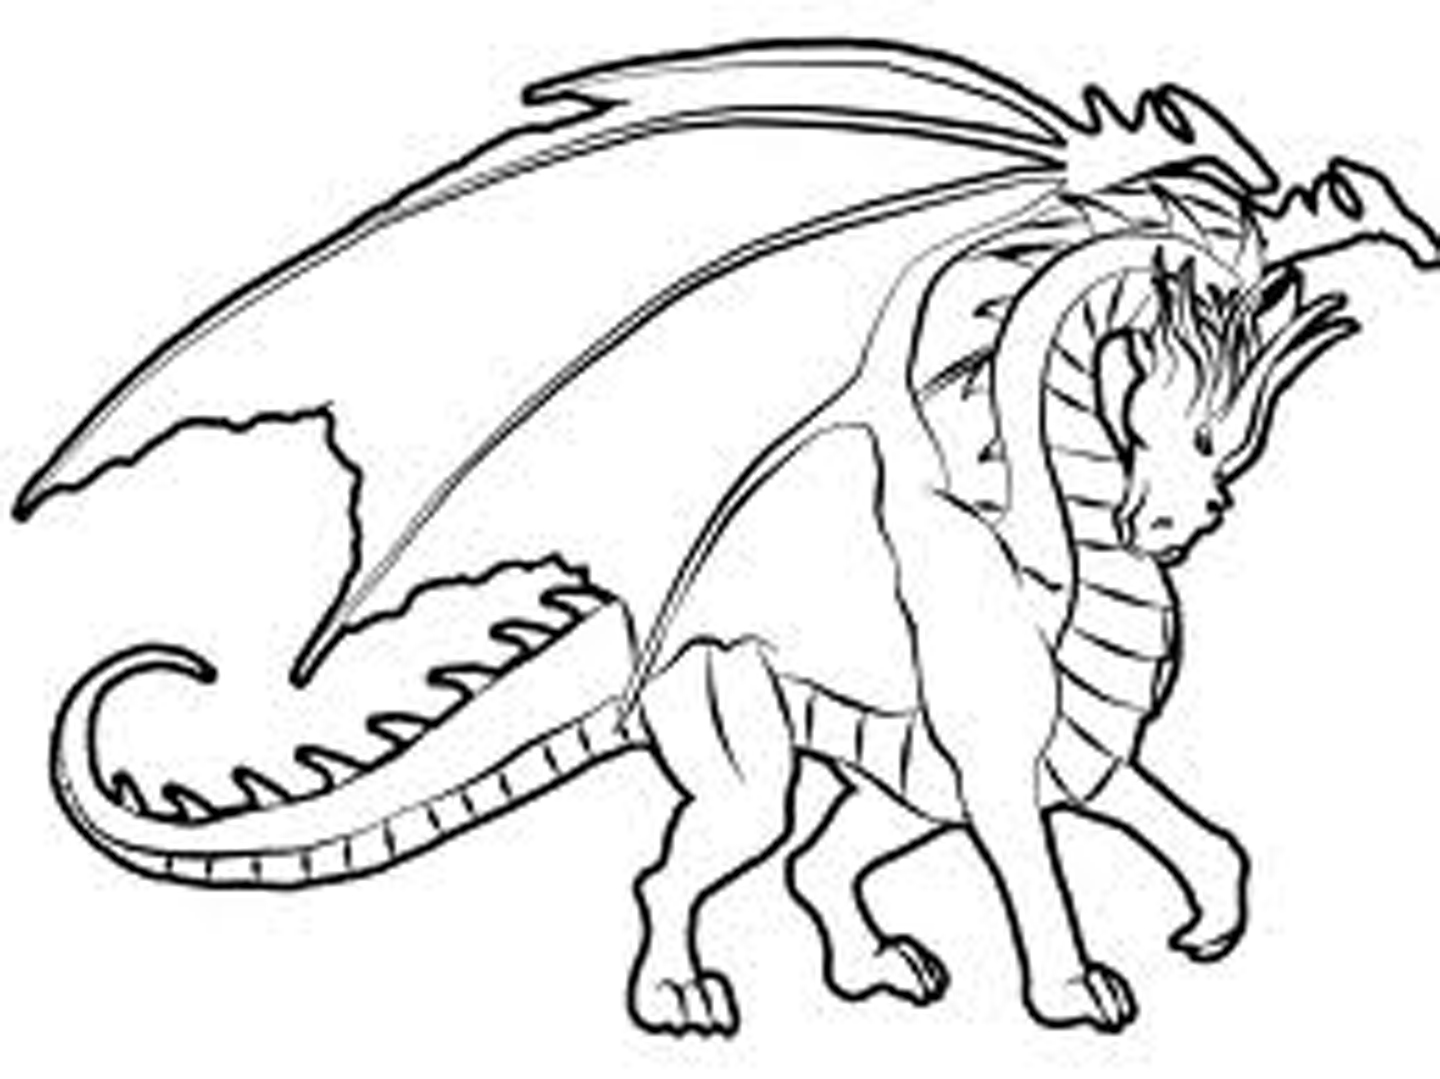 free coloring pages for teens - Printable Coloring Pages Dmoz